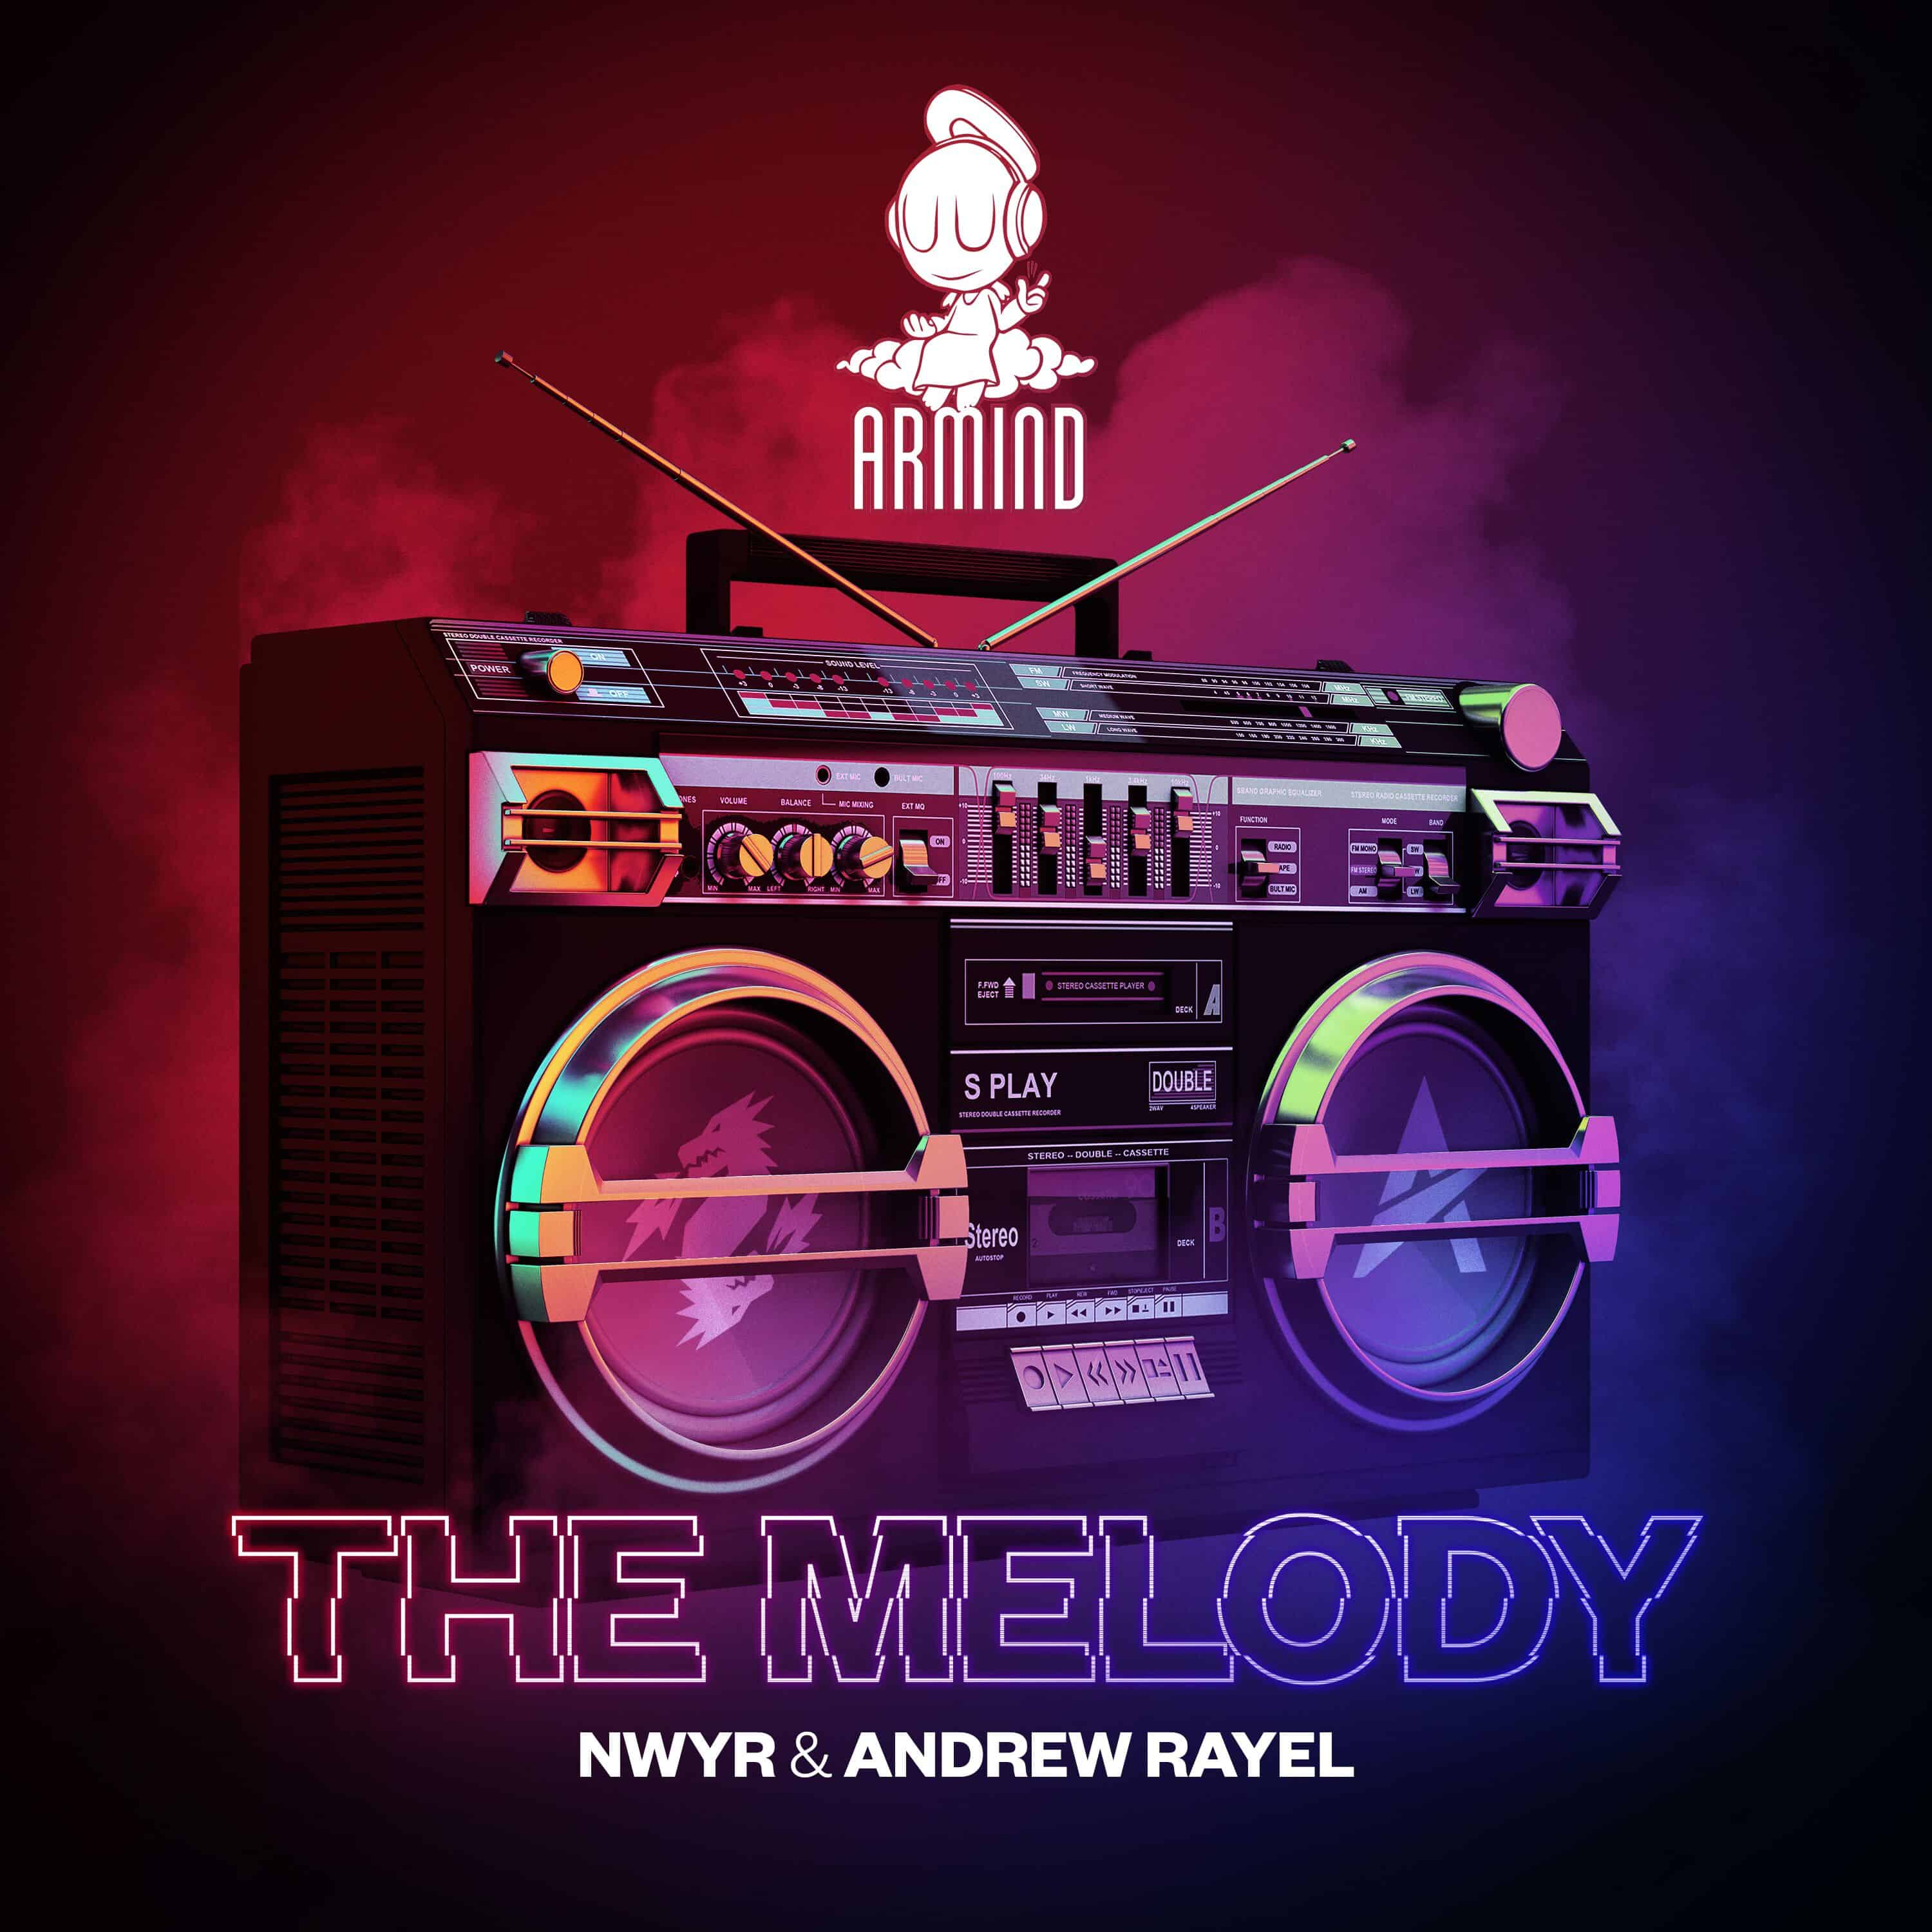 NWYR and Andrew Rayel combine signature styles in 'The Melody'